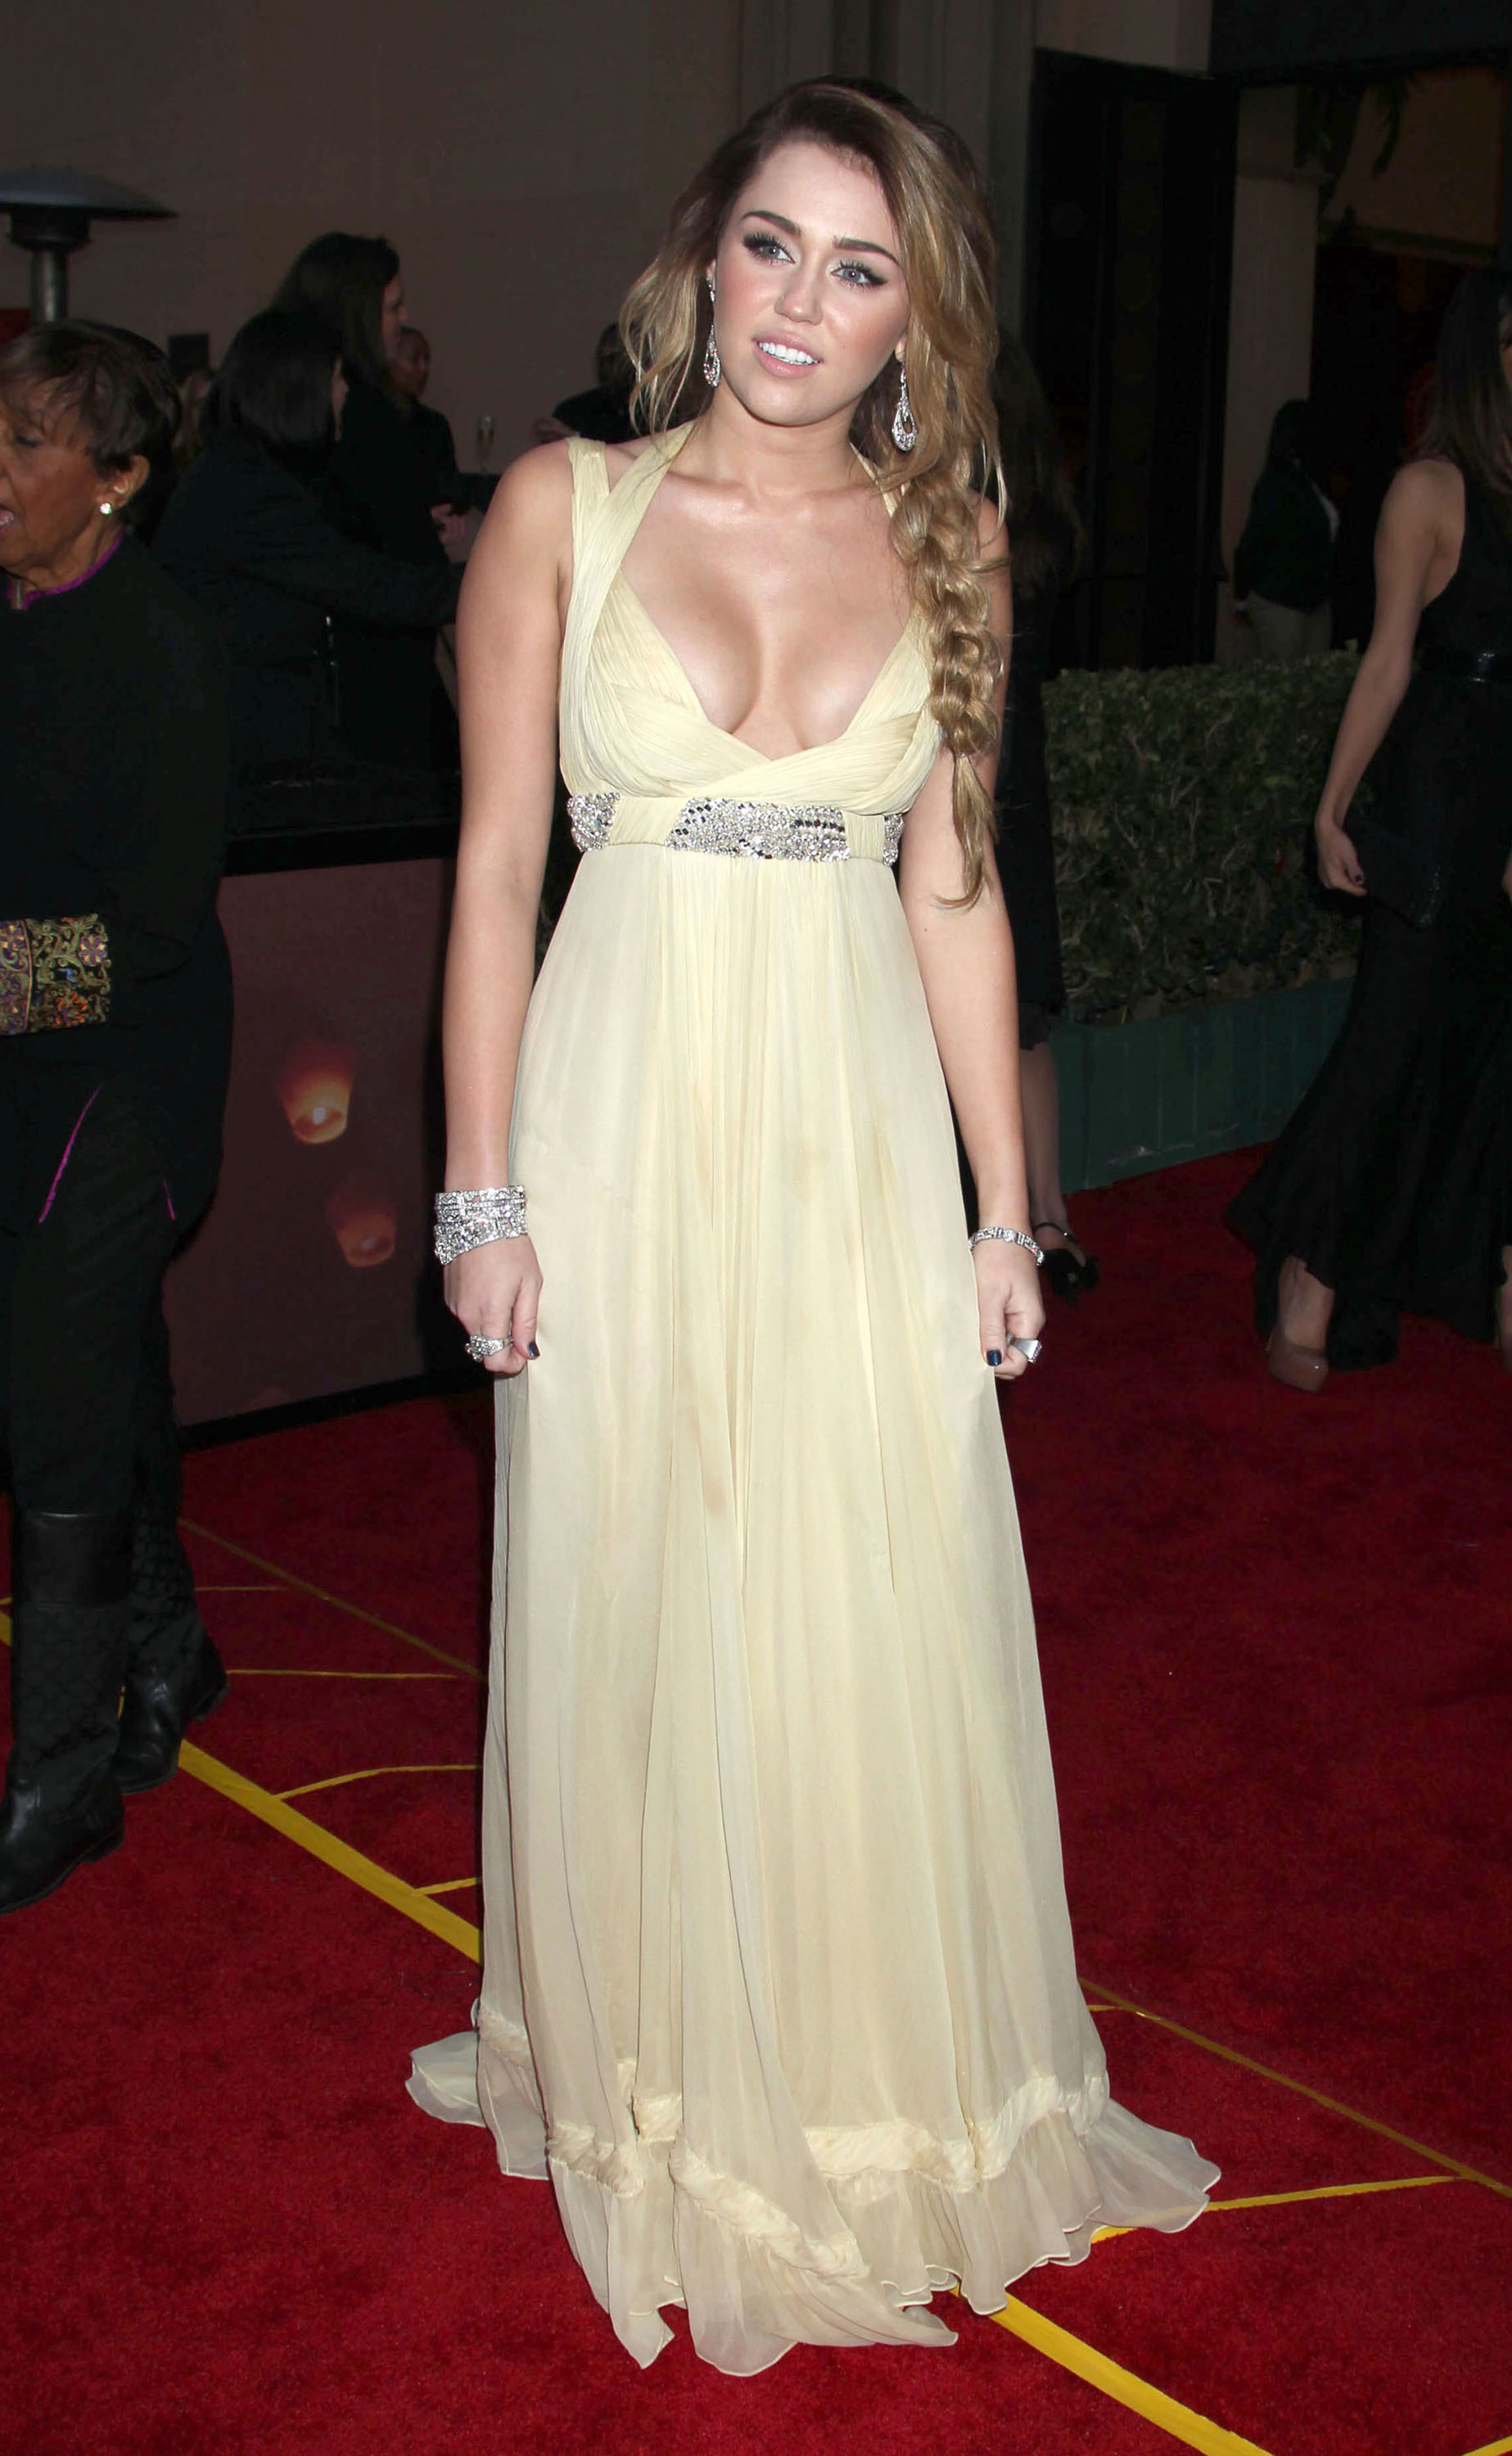 Miley Cyrus gown